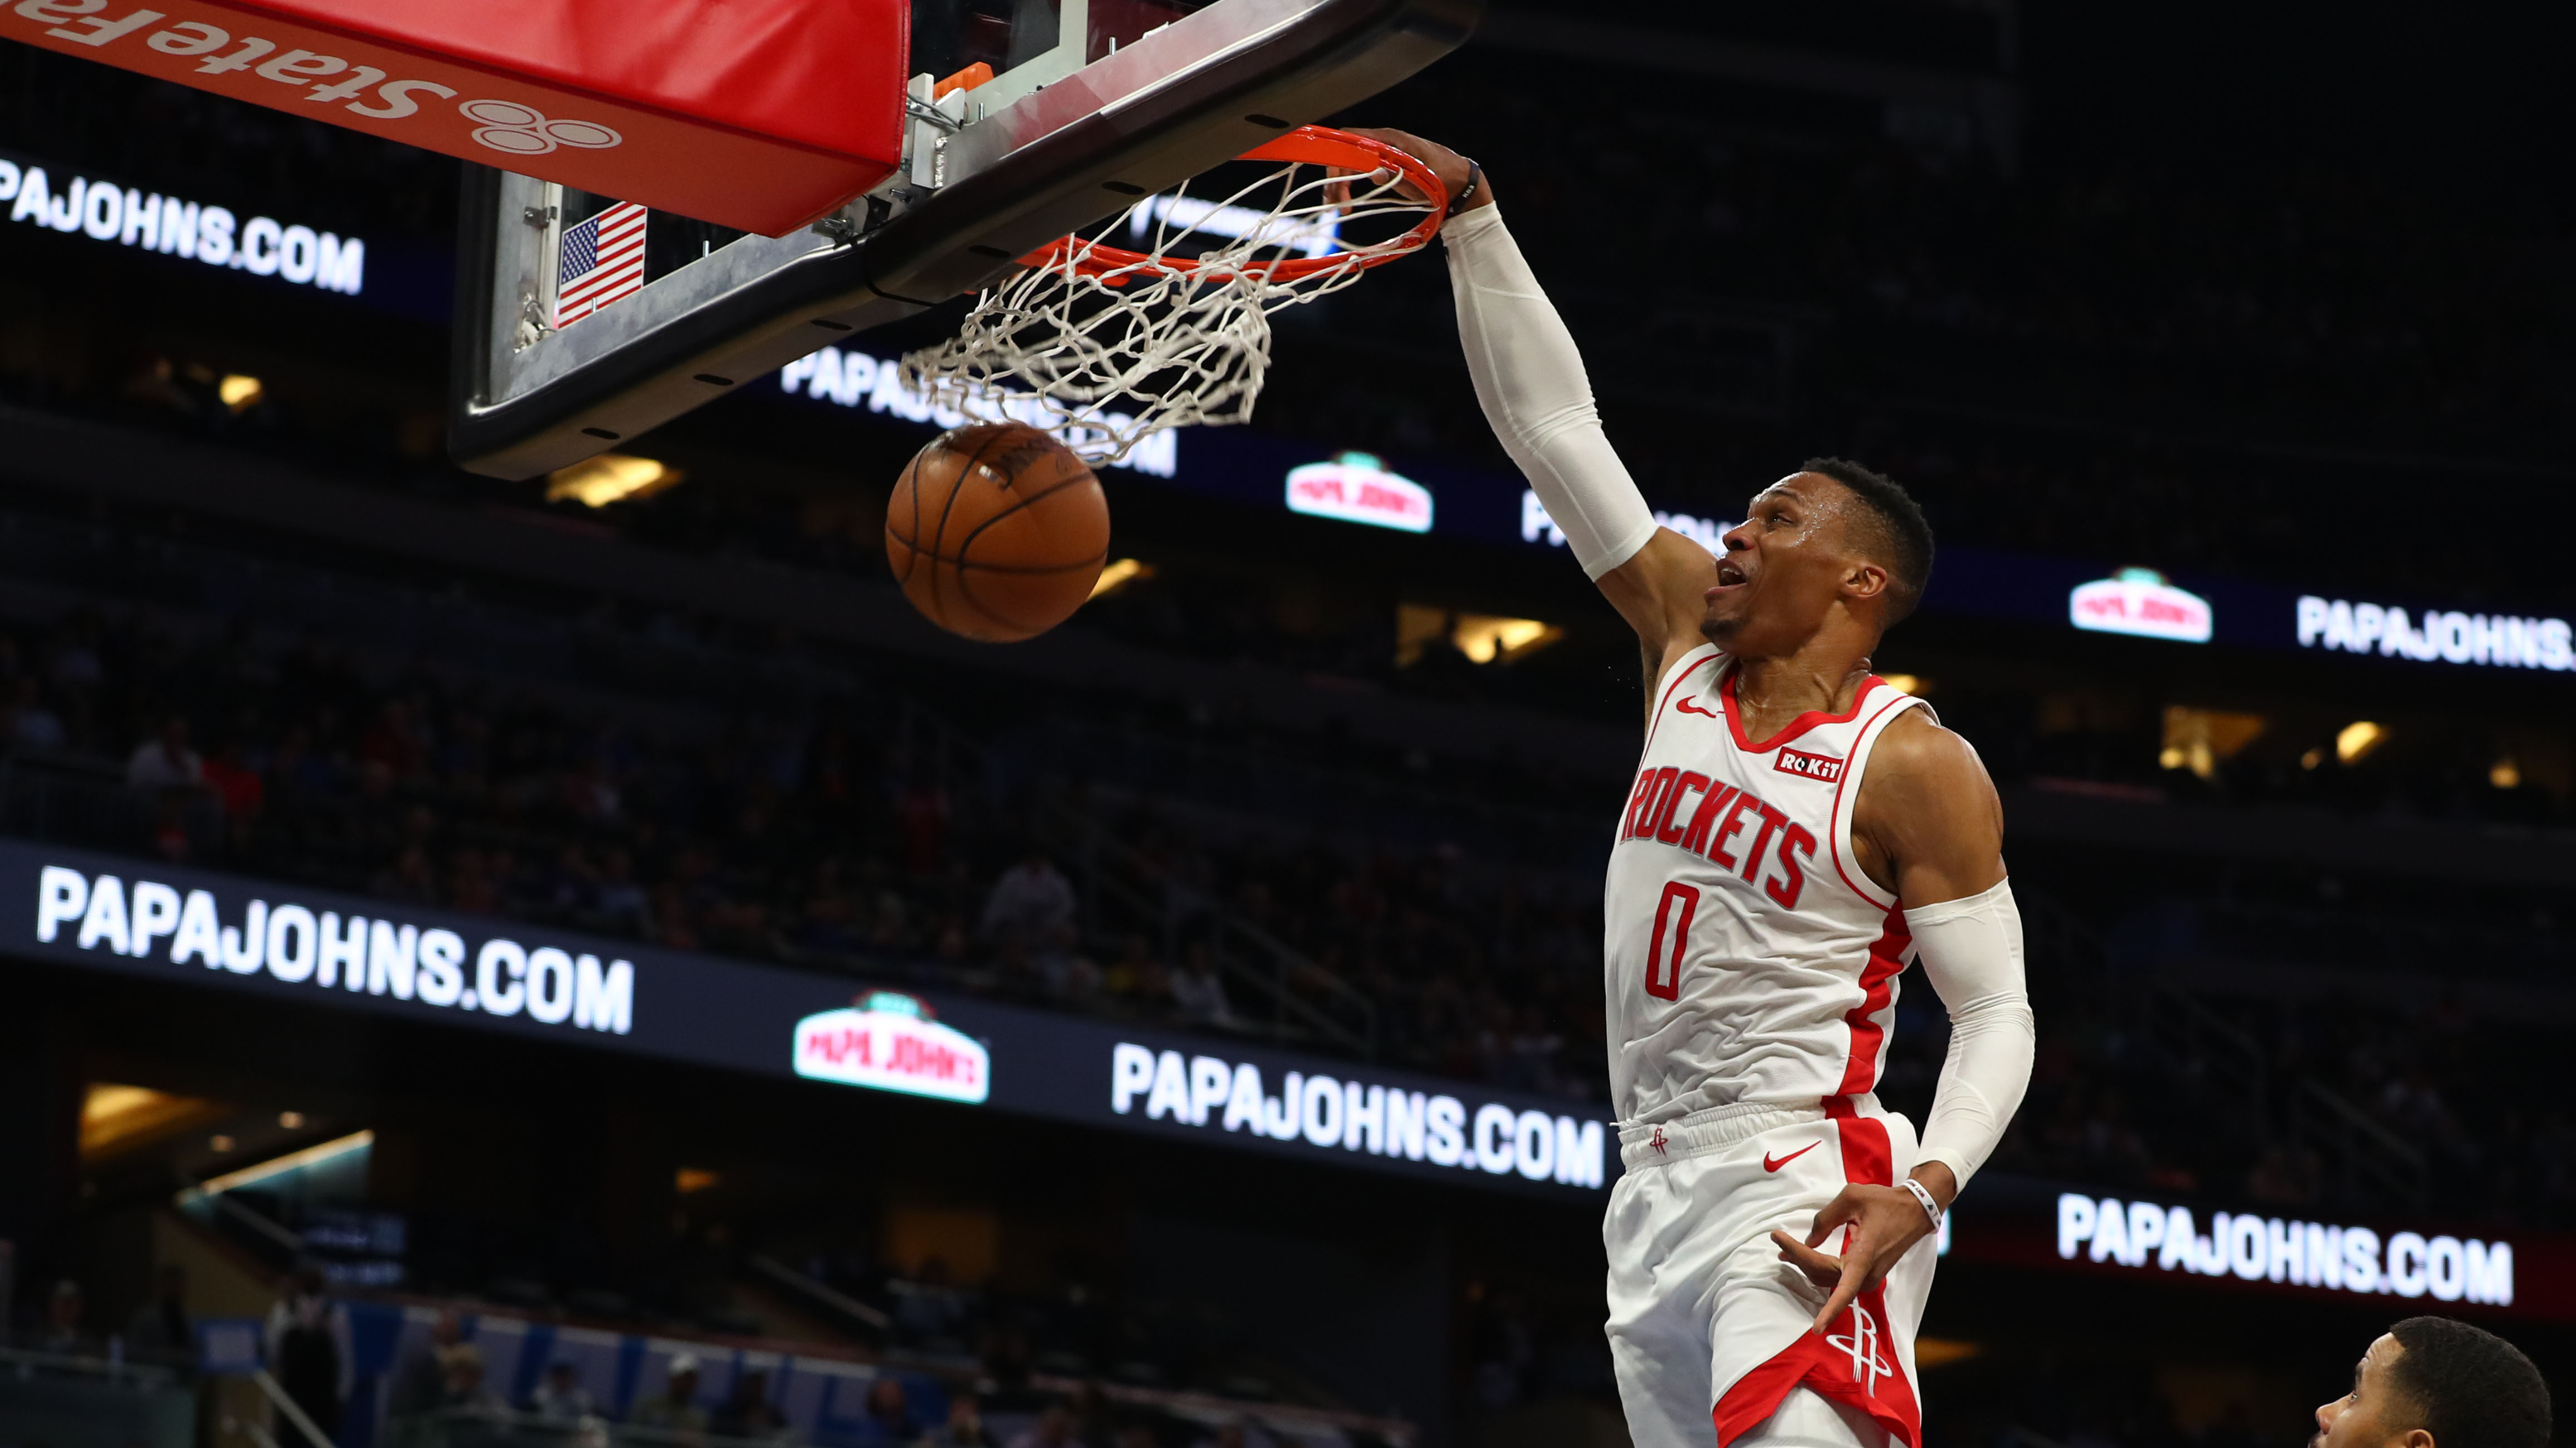 Russell Westbrook S Burst Is Back Fueling Hot Stretch